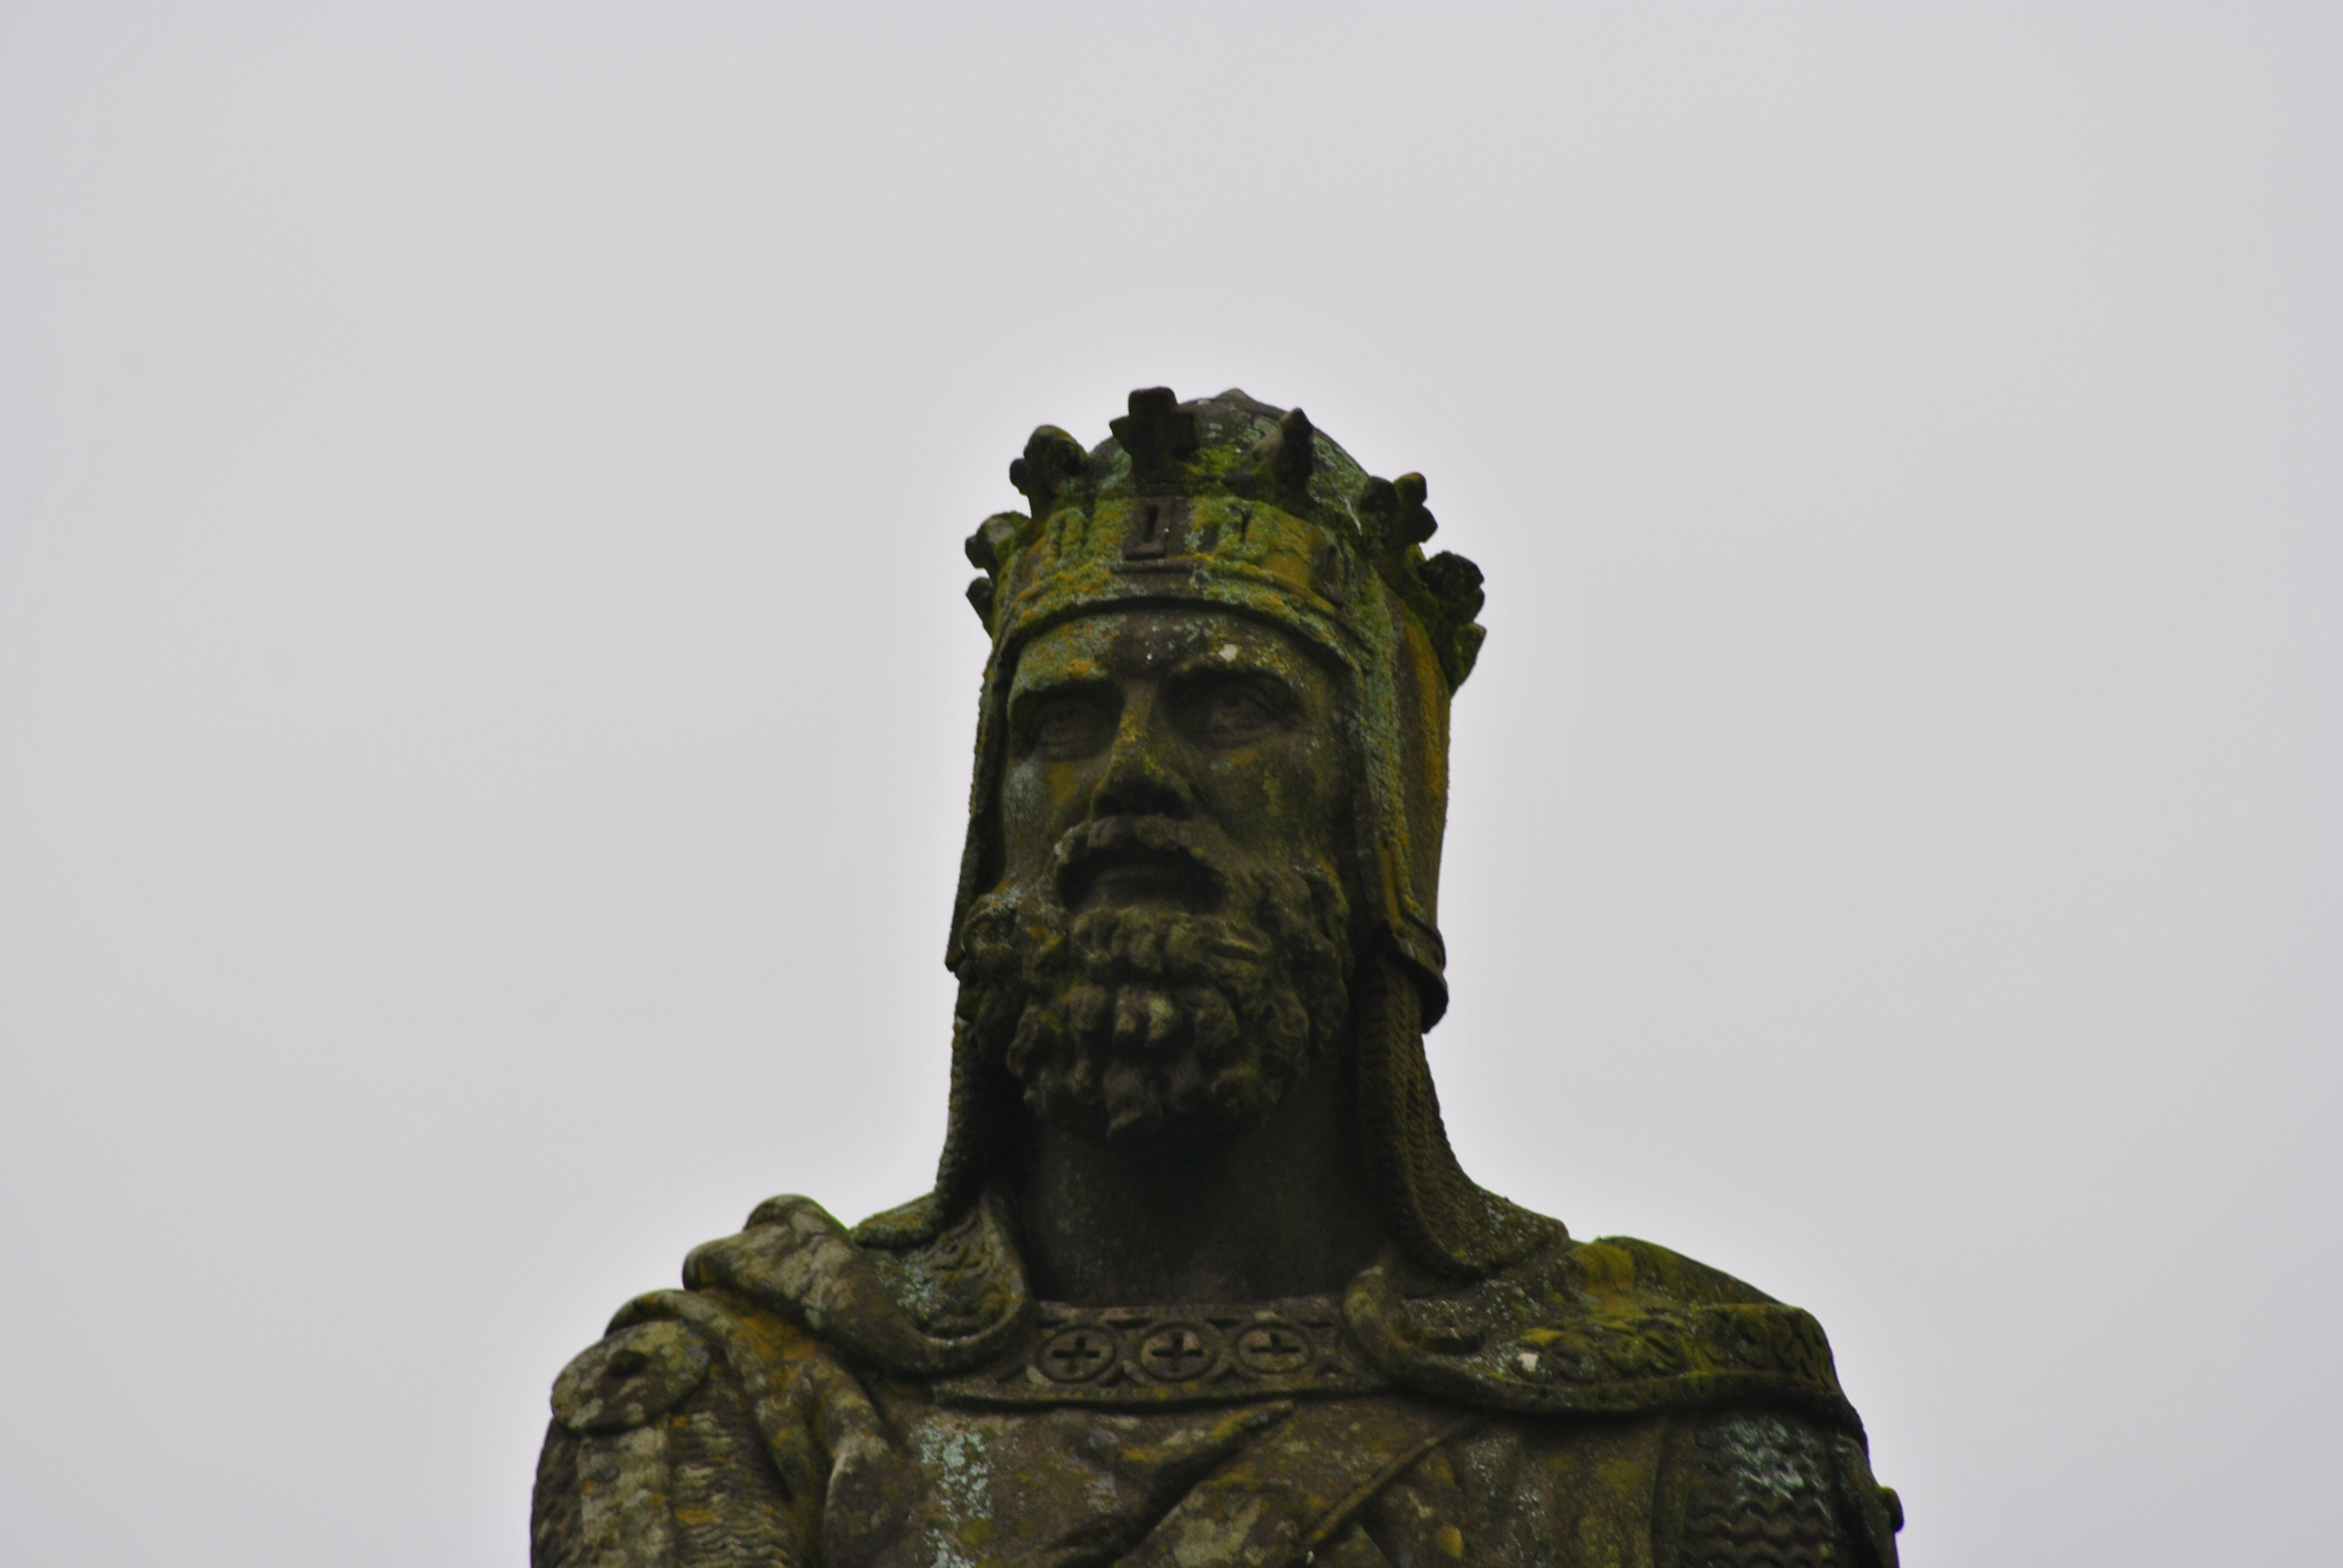 William Wallace's fourth part